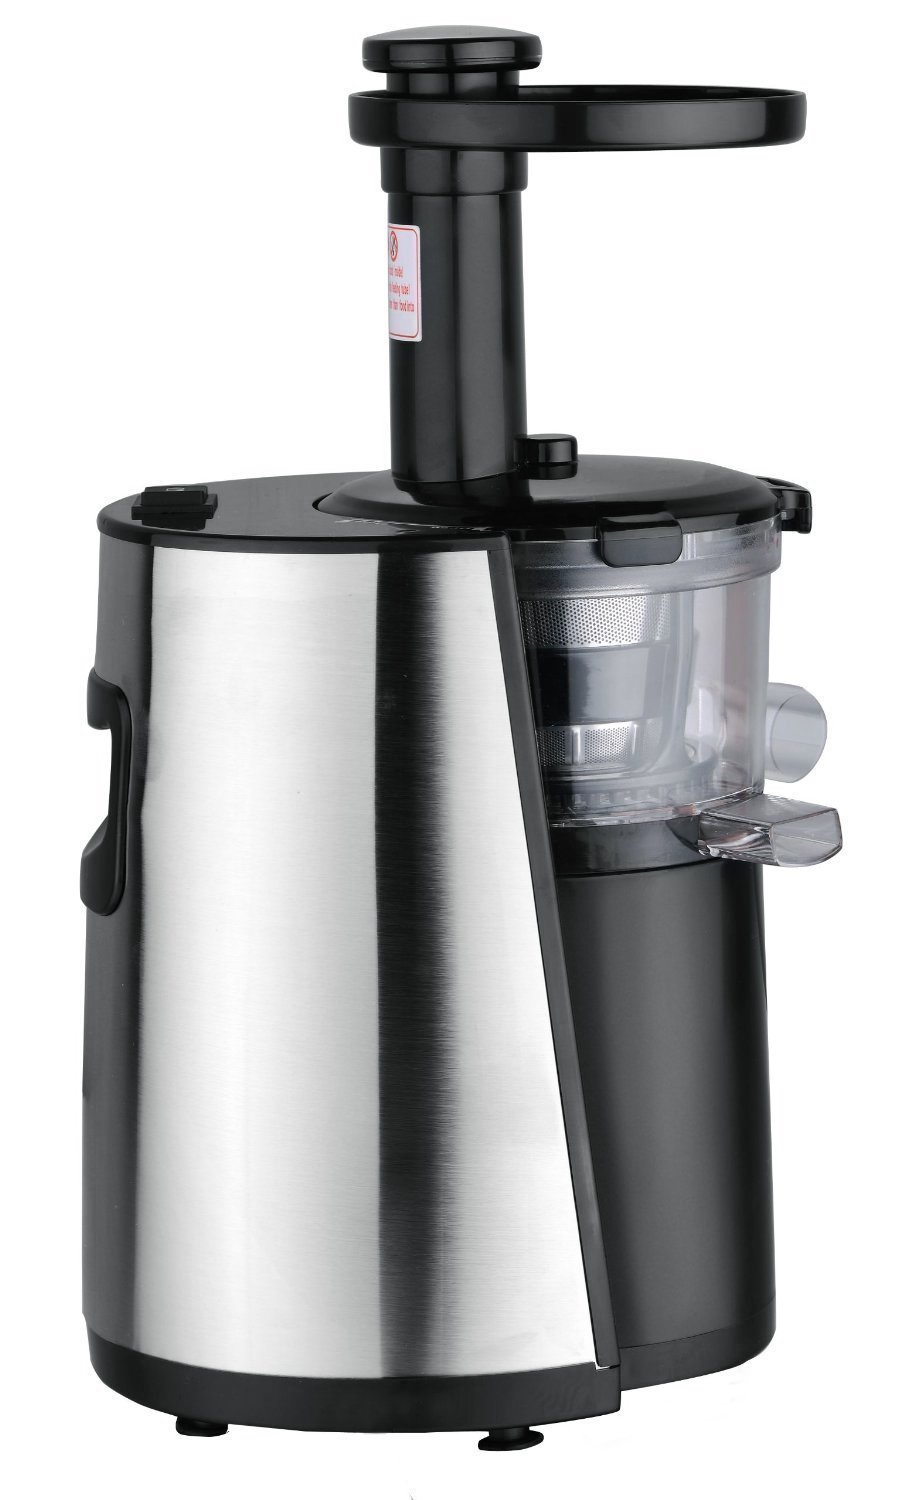 Chef's Star Slow Masticating Juicer - Stainless Steel/Black